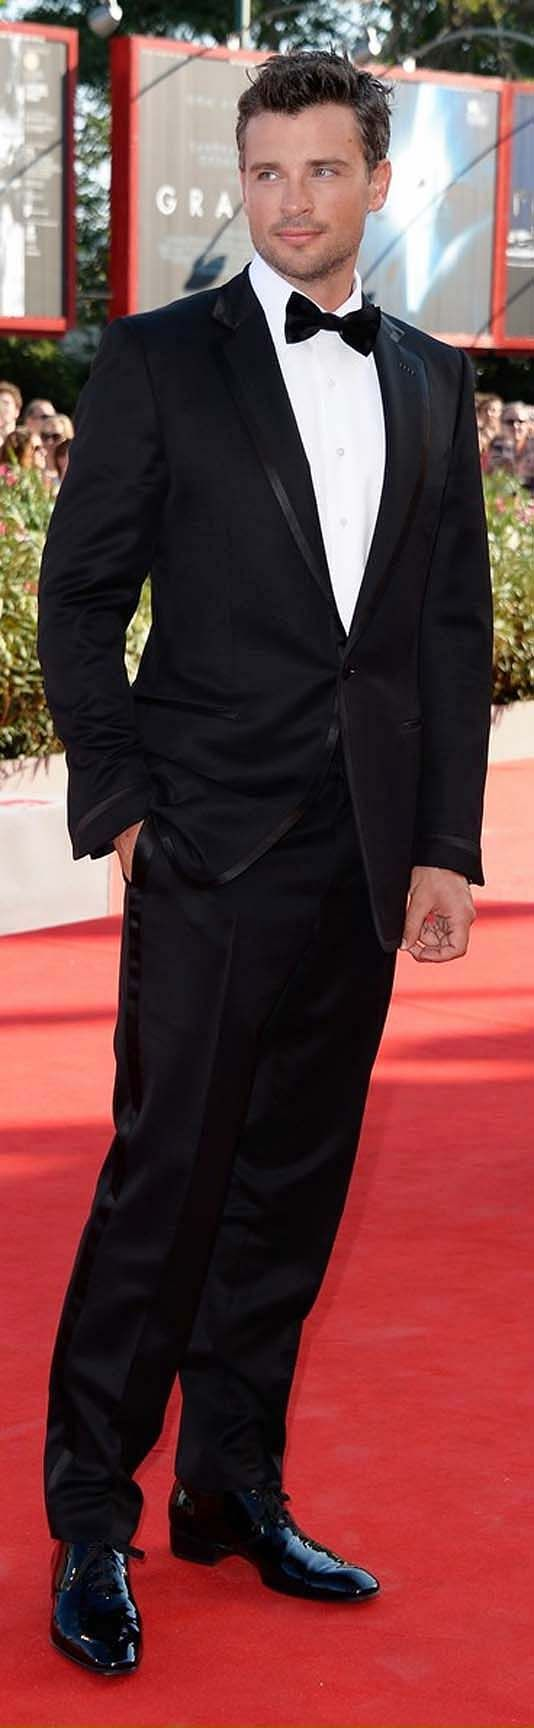 """Black Tie - Tom Welling at Venice Film Festival 2013 for opening of """"Parkland"""""""